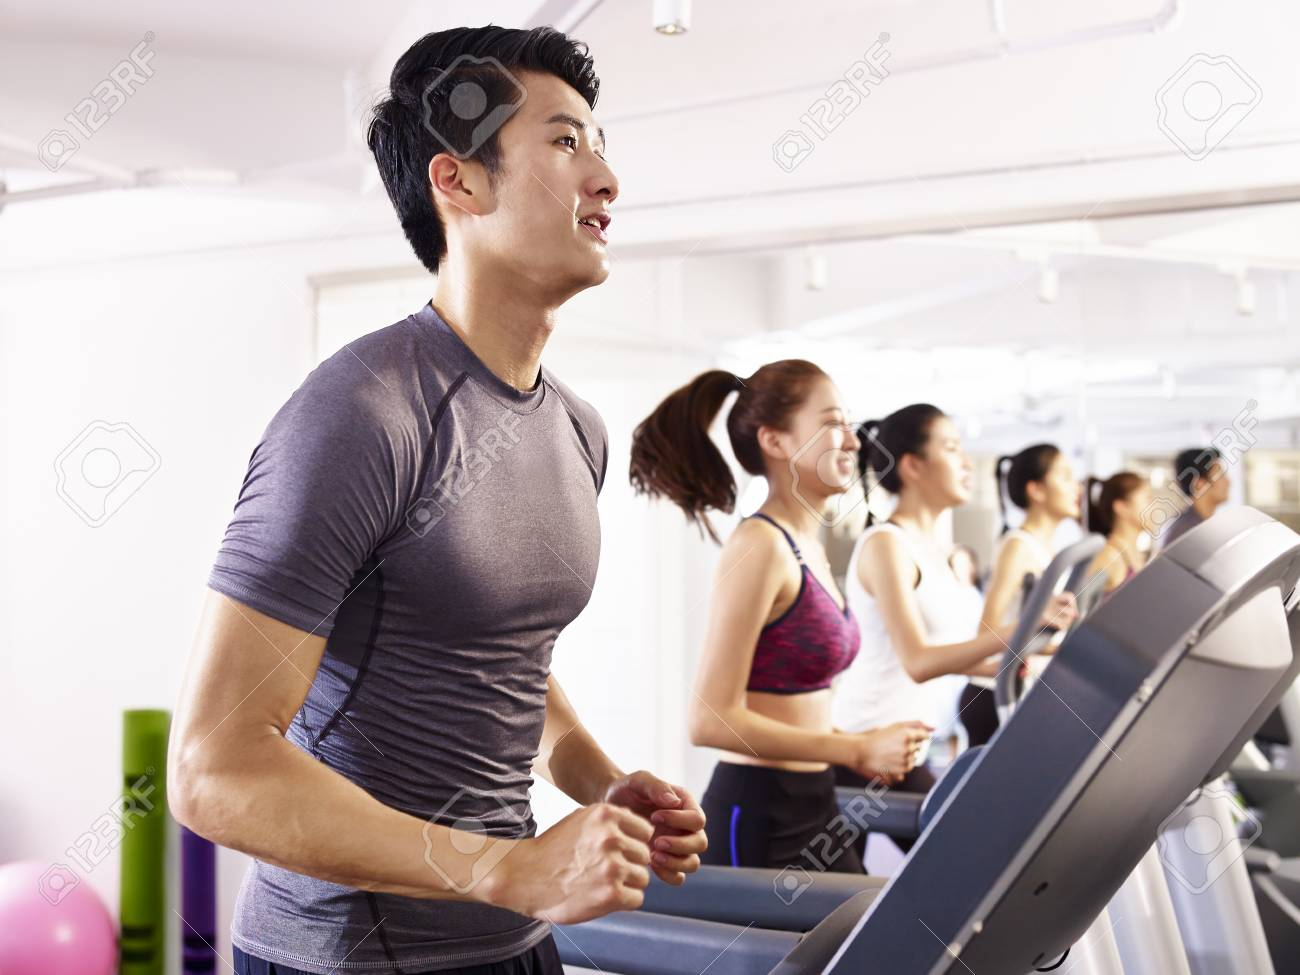 young asian adult working out on treadmill. - 88030786